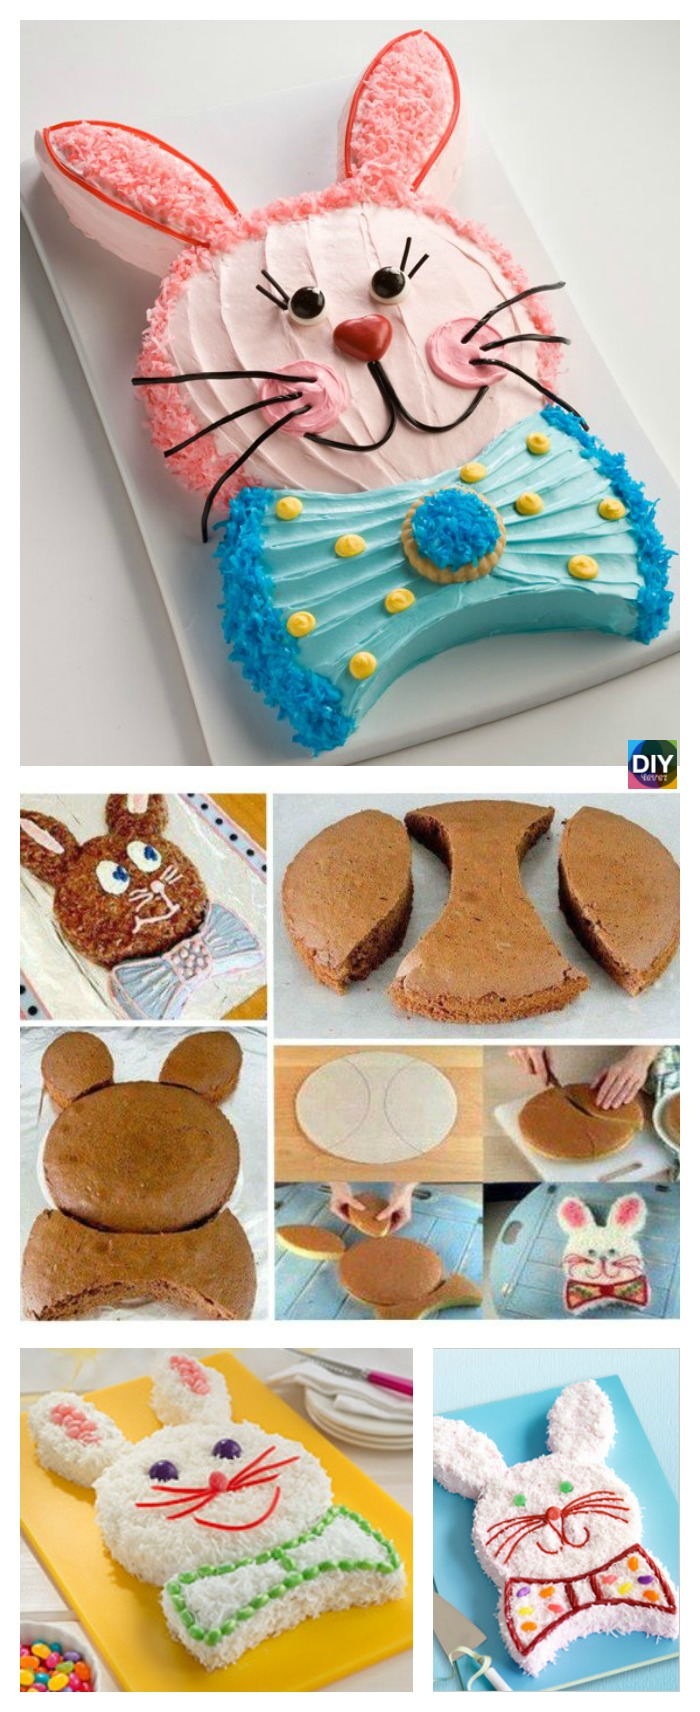 diy4ever-Easy DIY Easter Bunny Cake Tutorial